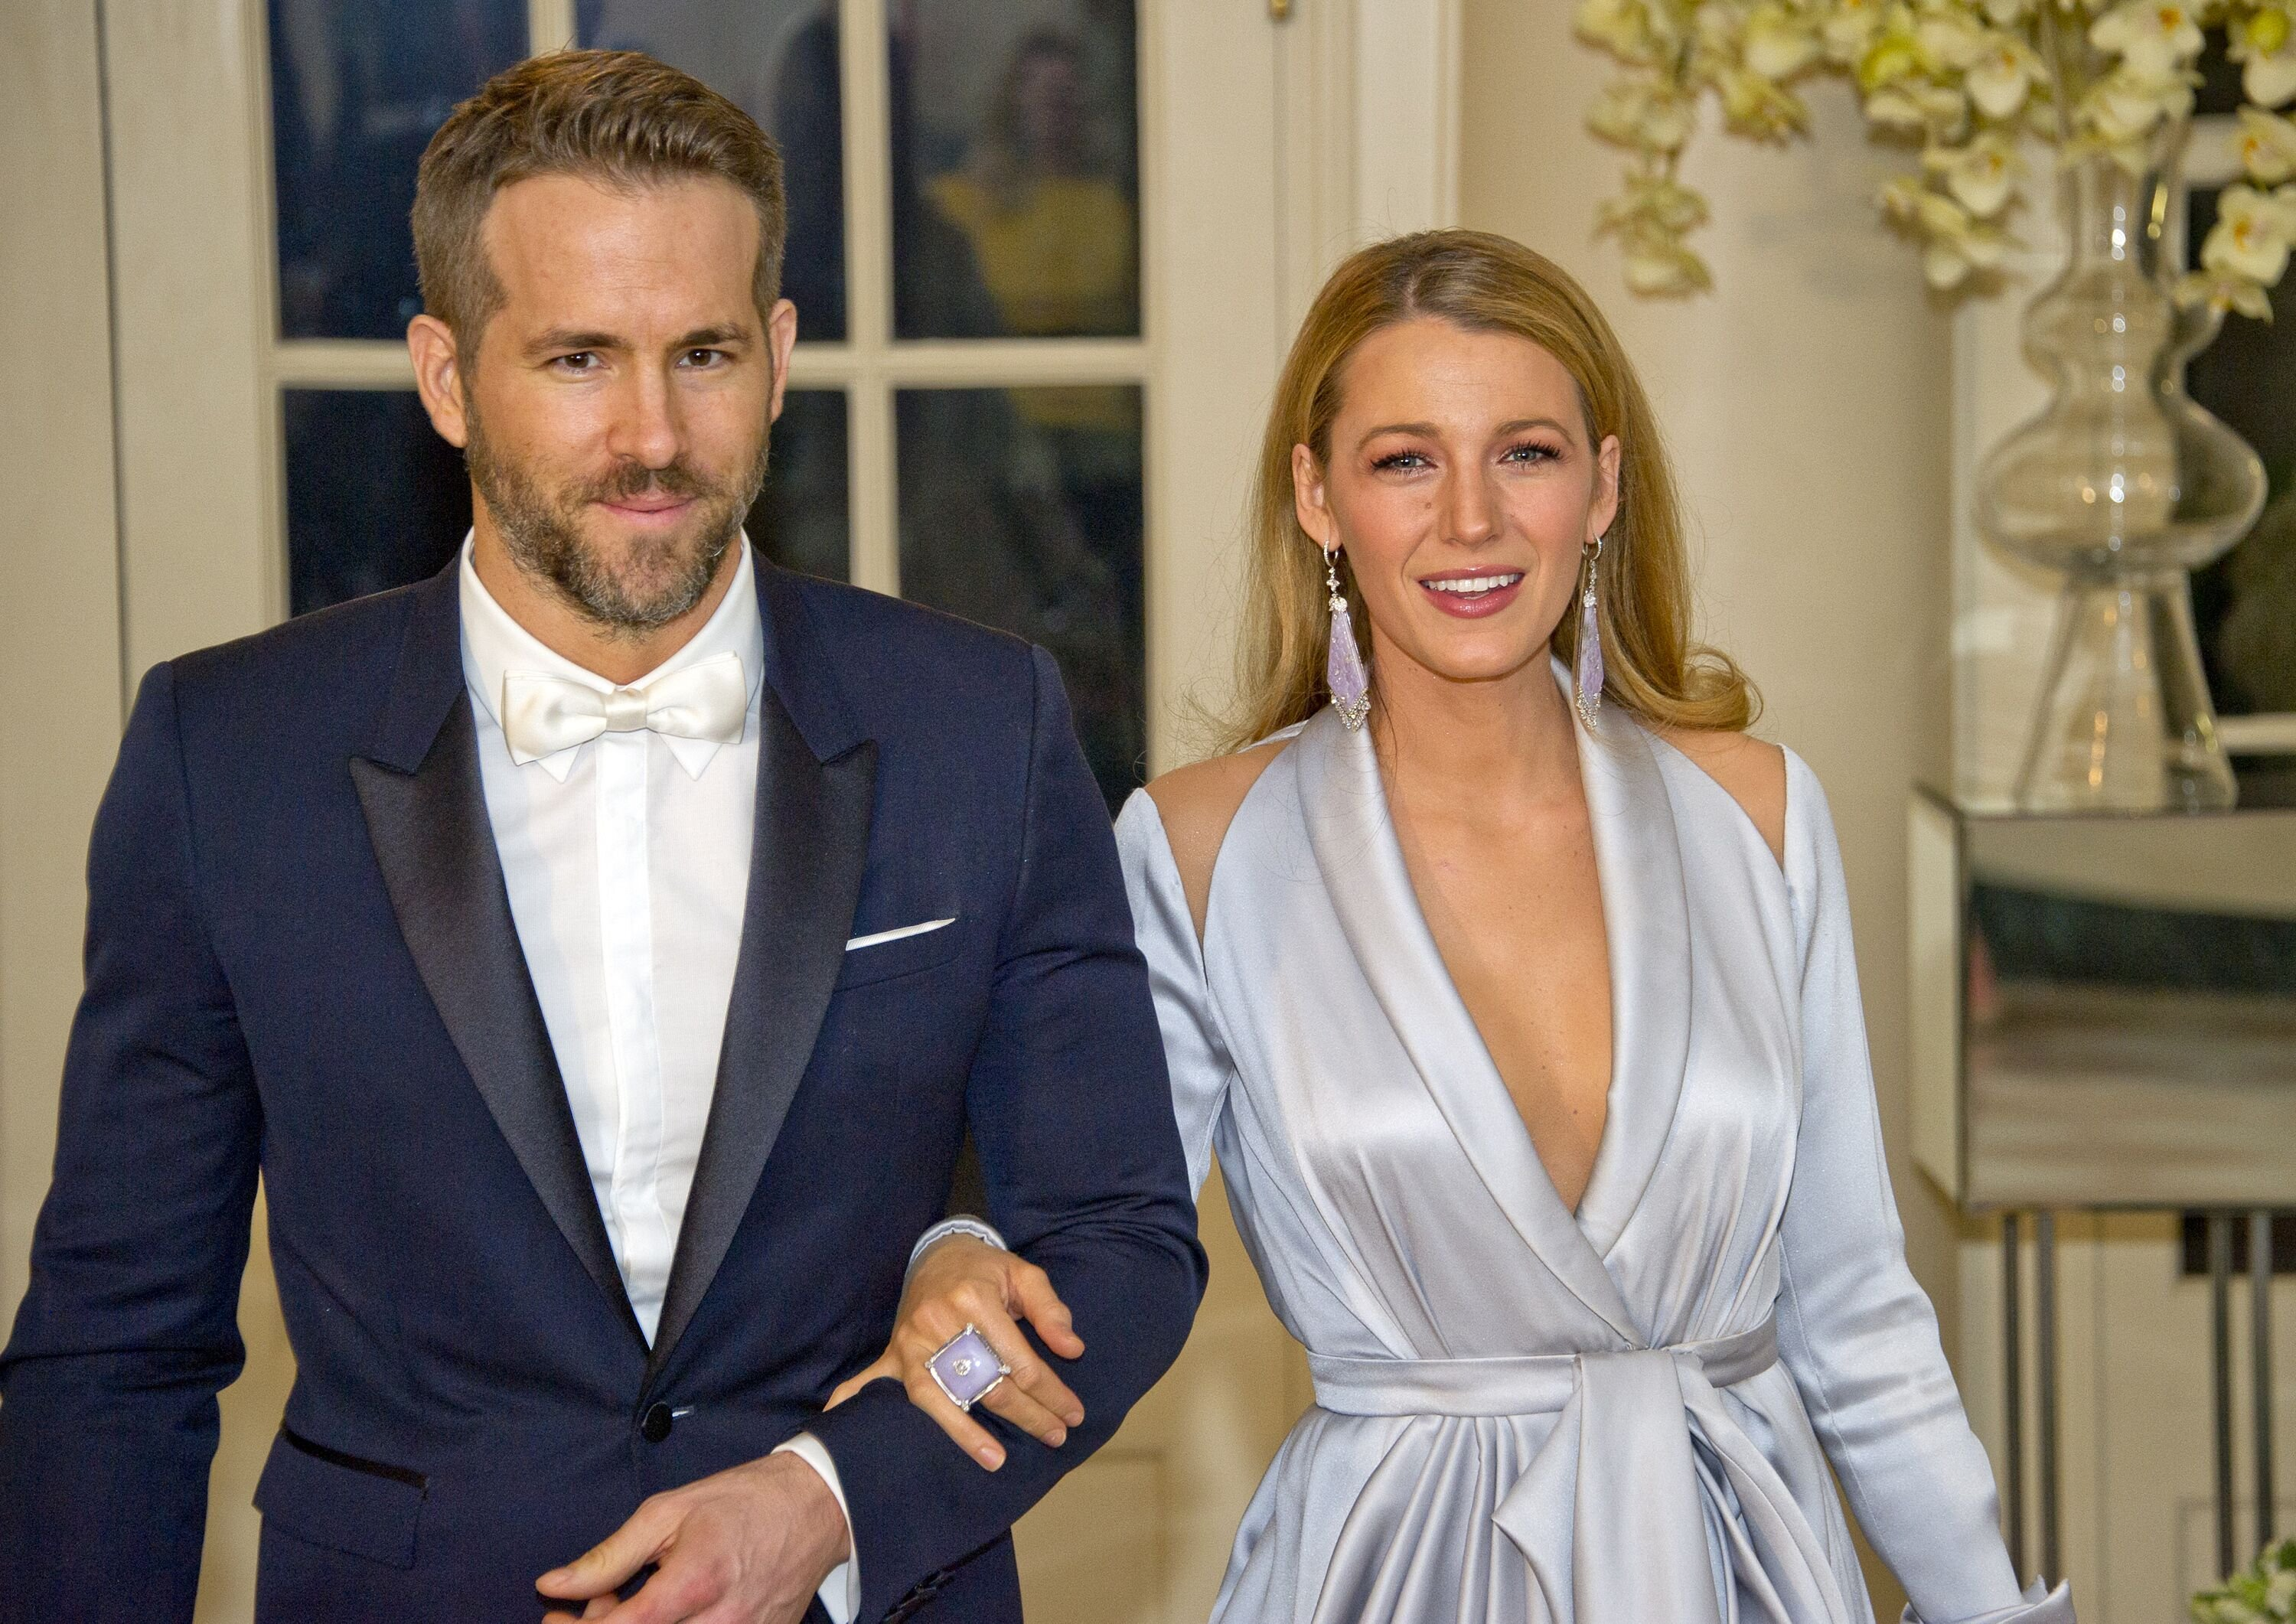 Ryan Reynolds and Blake Lively arrive for the State Dinner in honor of Prime Minister Trudeau and Mrs. Sophie Trudeau of Canada at the White House March 10, 2016 in Washington, DC | Photo: Getty Images